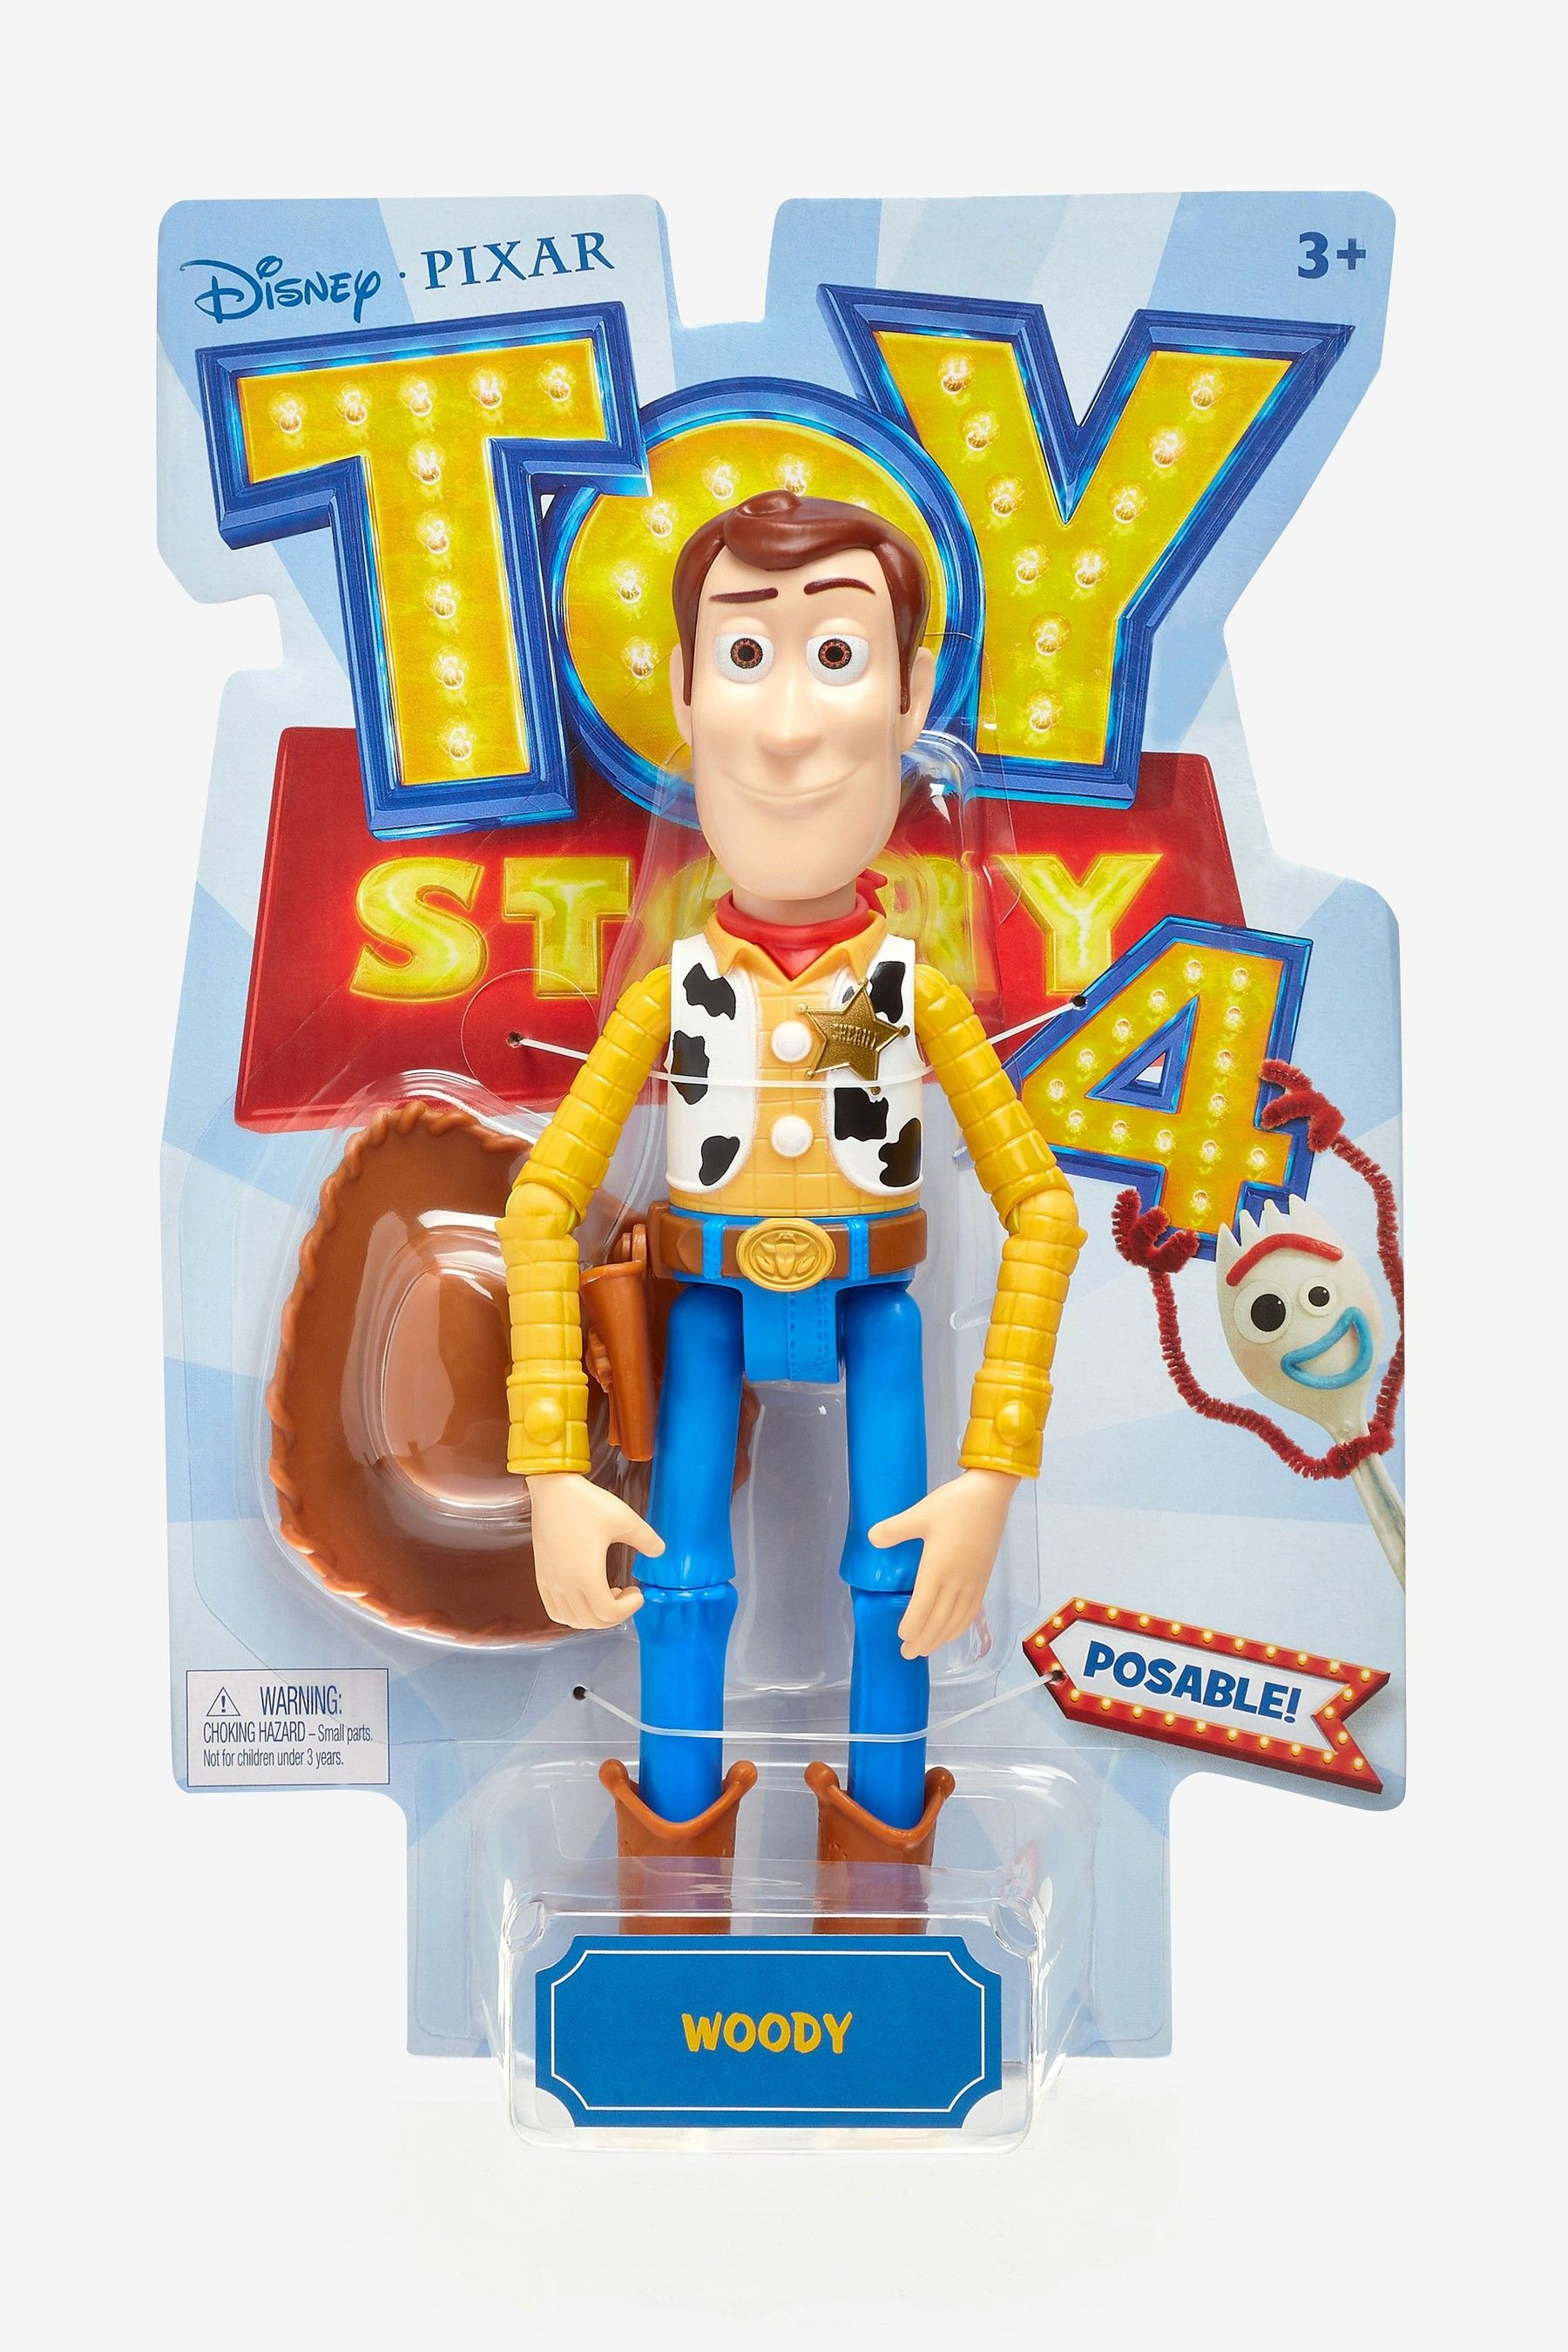 DISNEY PIXAR Toy Story 4 Posable Woody Figure Doll New in Original  Package